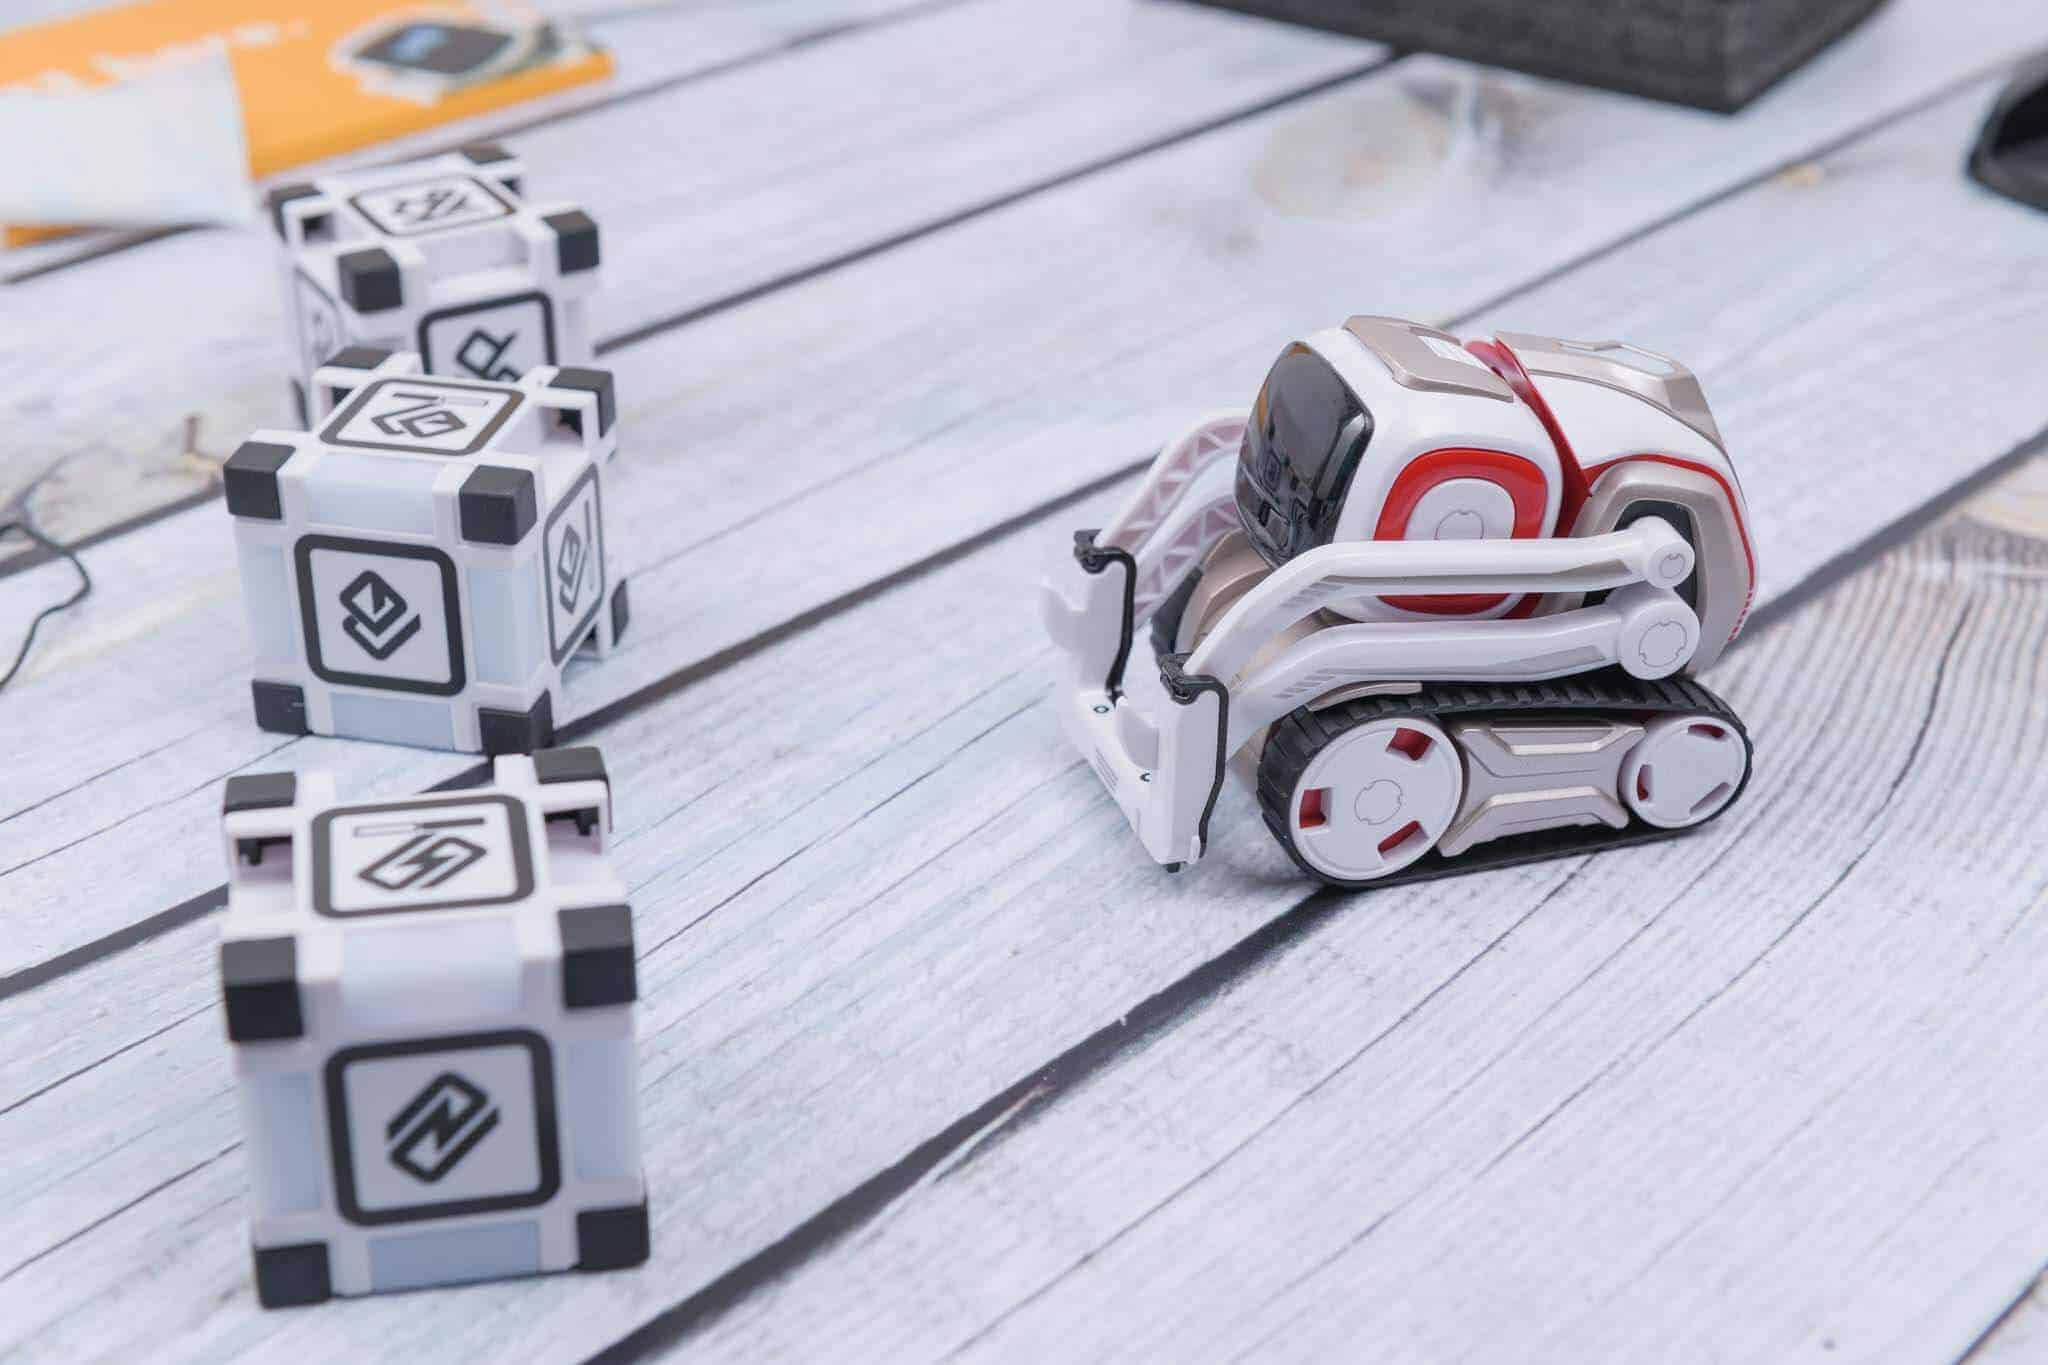 Anki Cozmo Robot Review - Playing the First Game